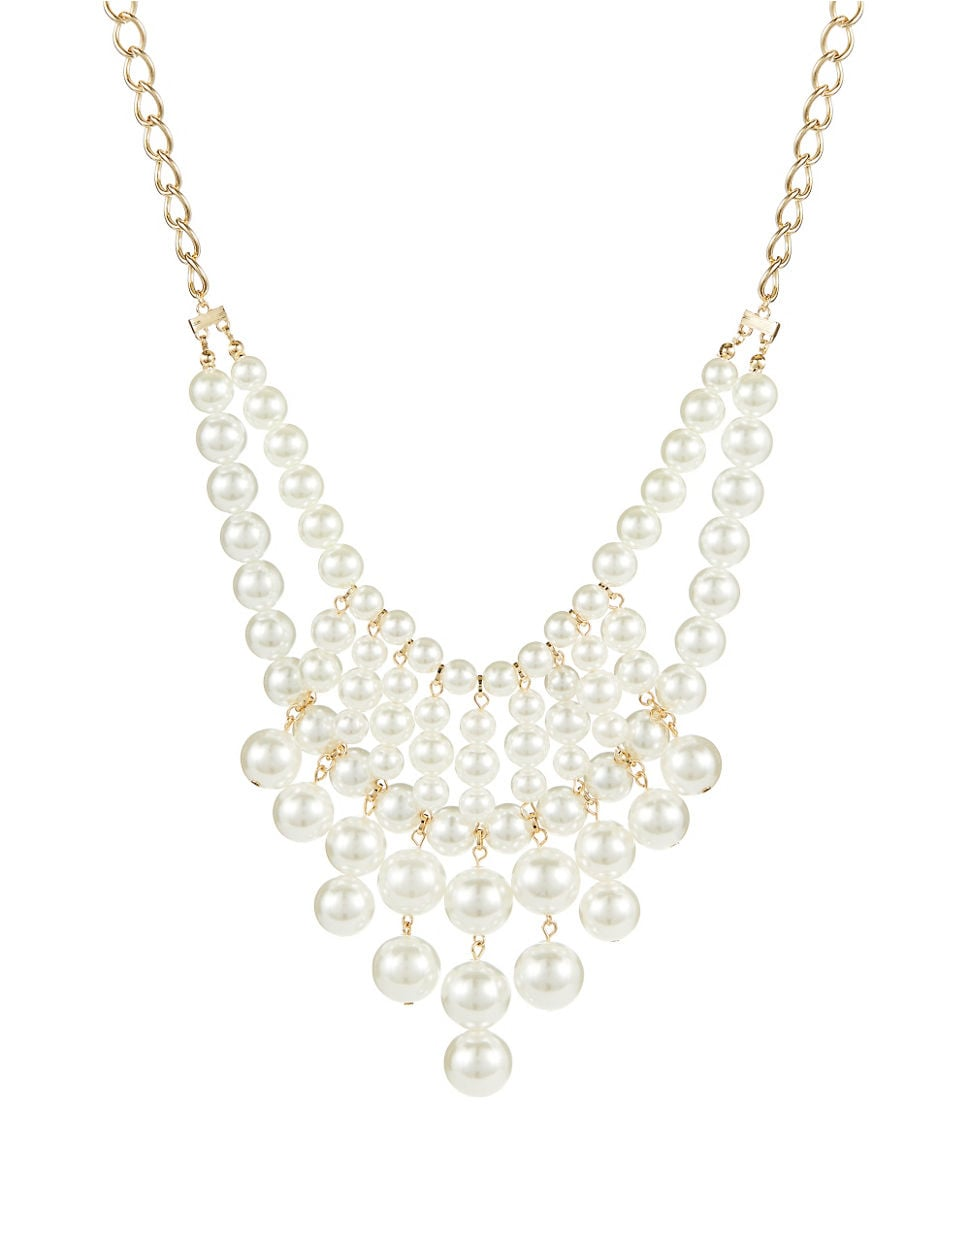 Robert Rose Pearl Bib Necklace